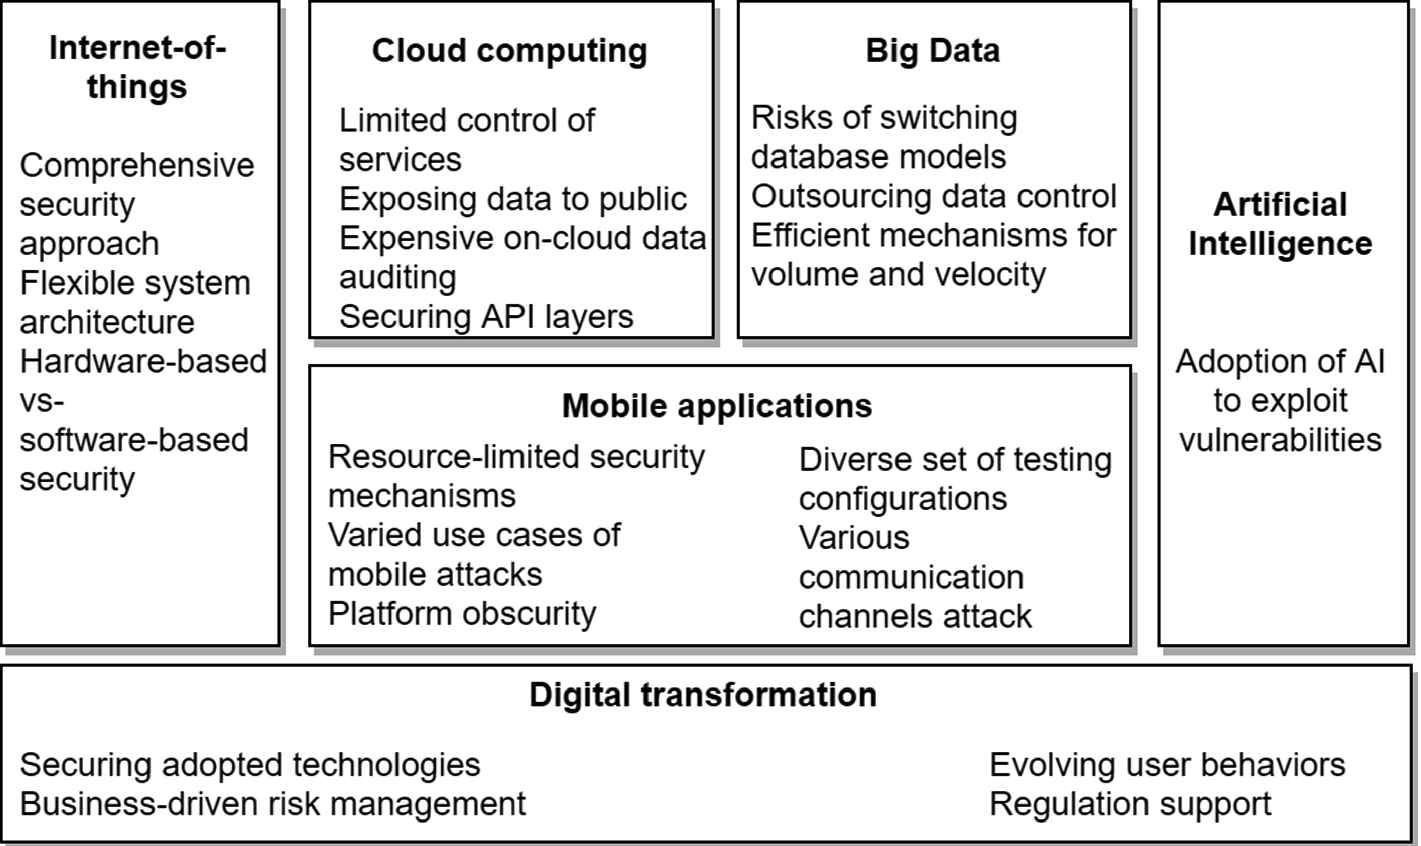 Identifying Security Risks of Digital Transformation - An ...